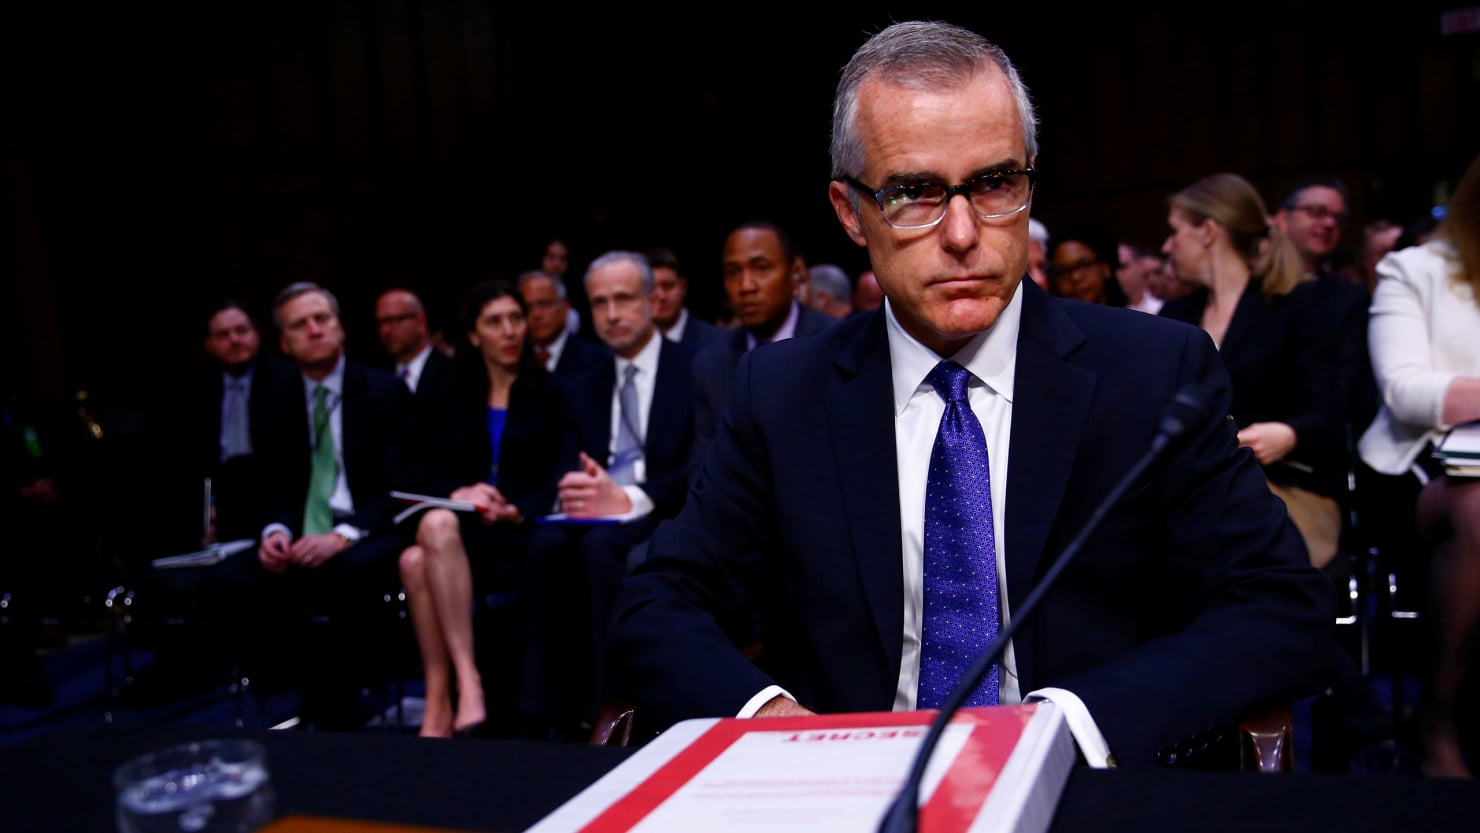 McCabe legal defense fund raises nearly 400K in less than a day